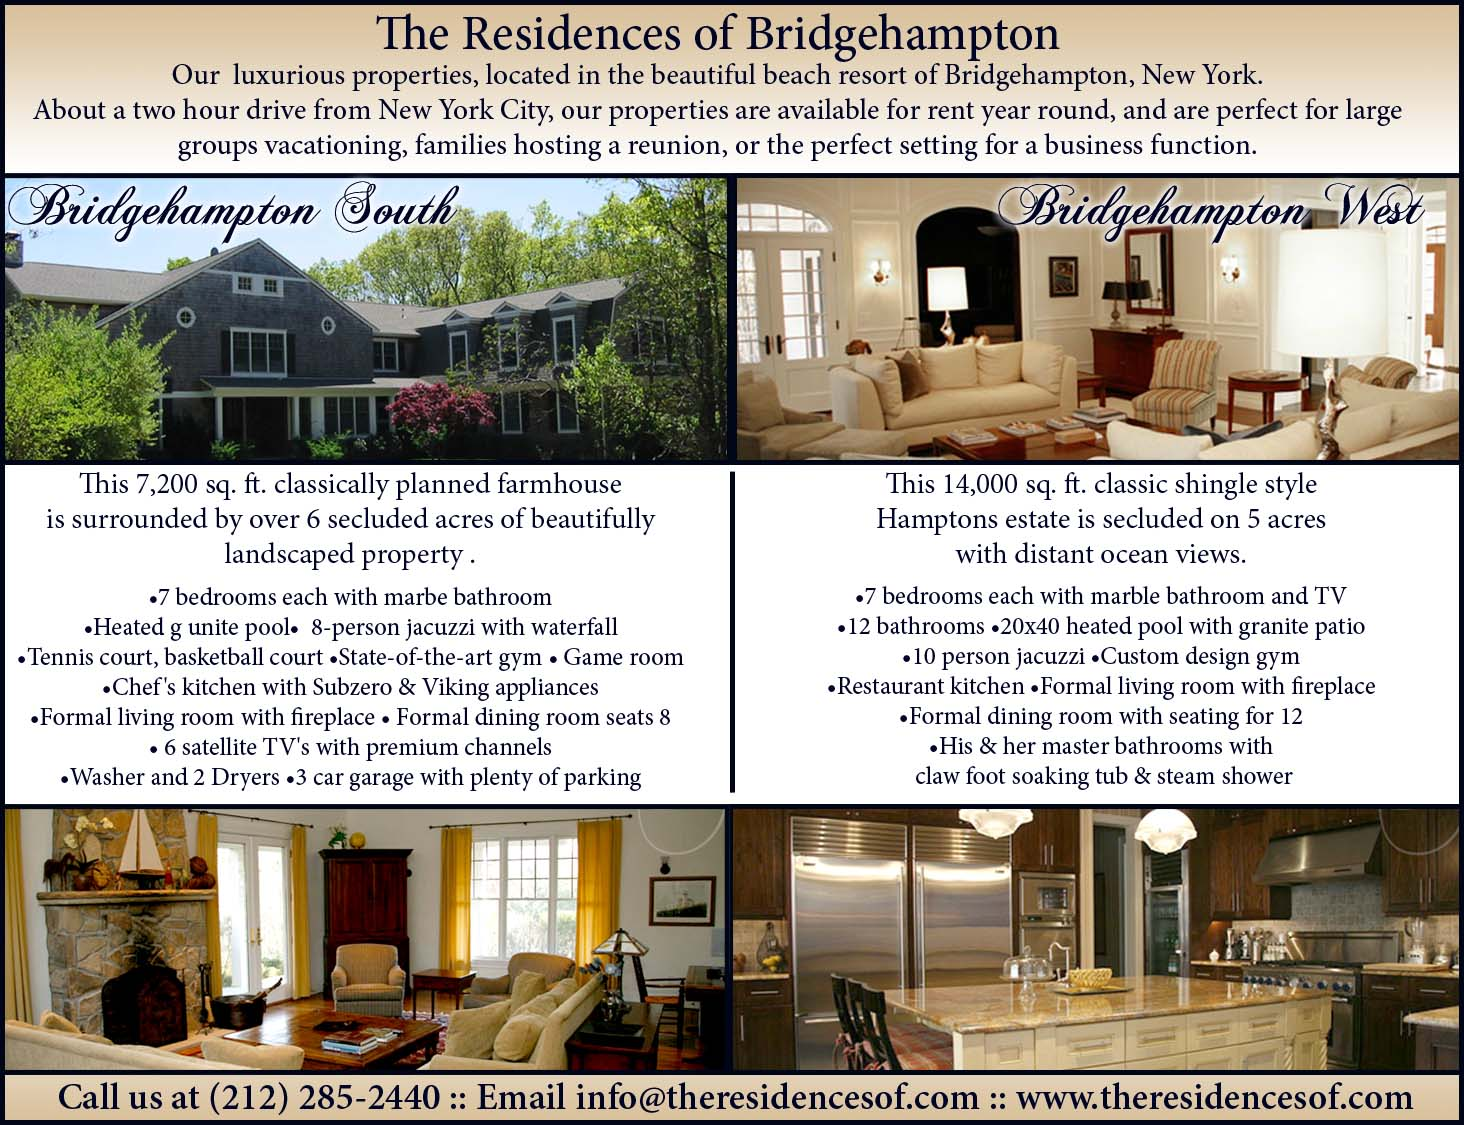 Residences of Bridgehampton